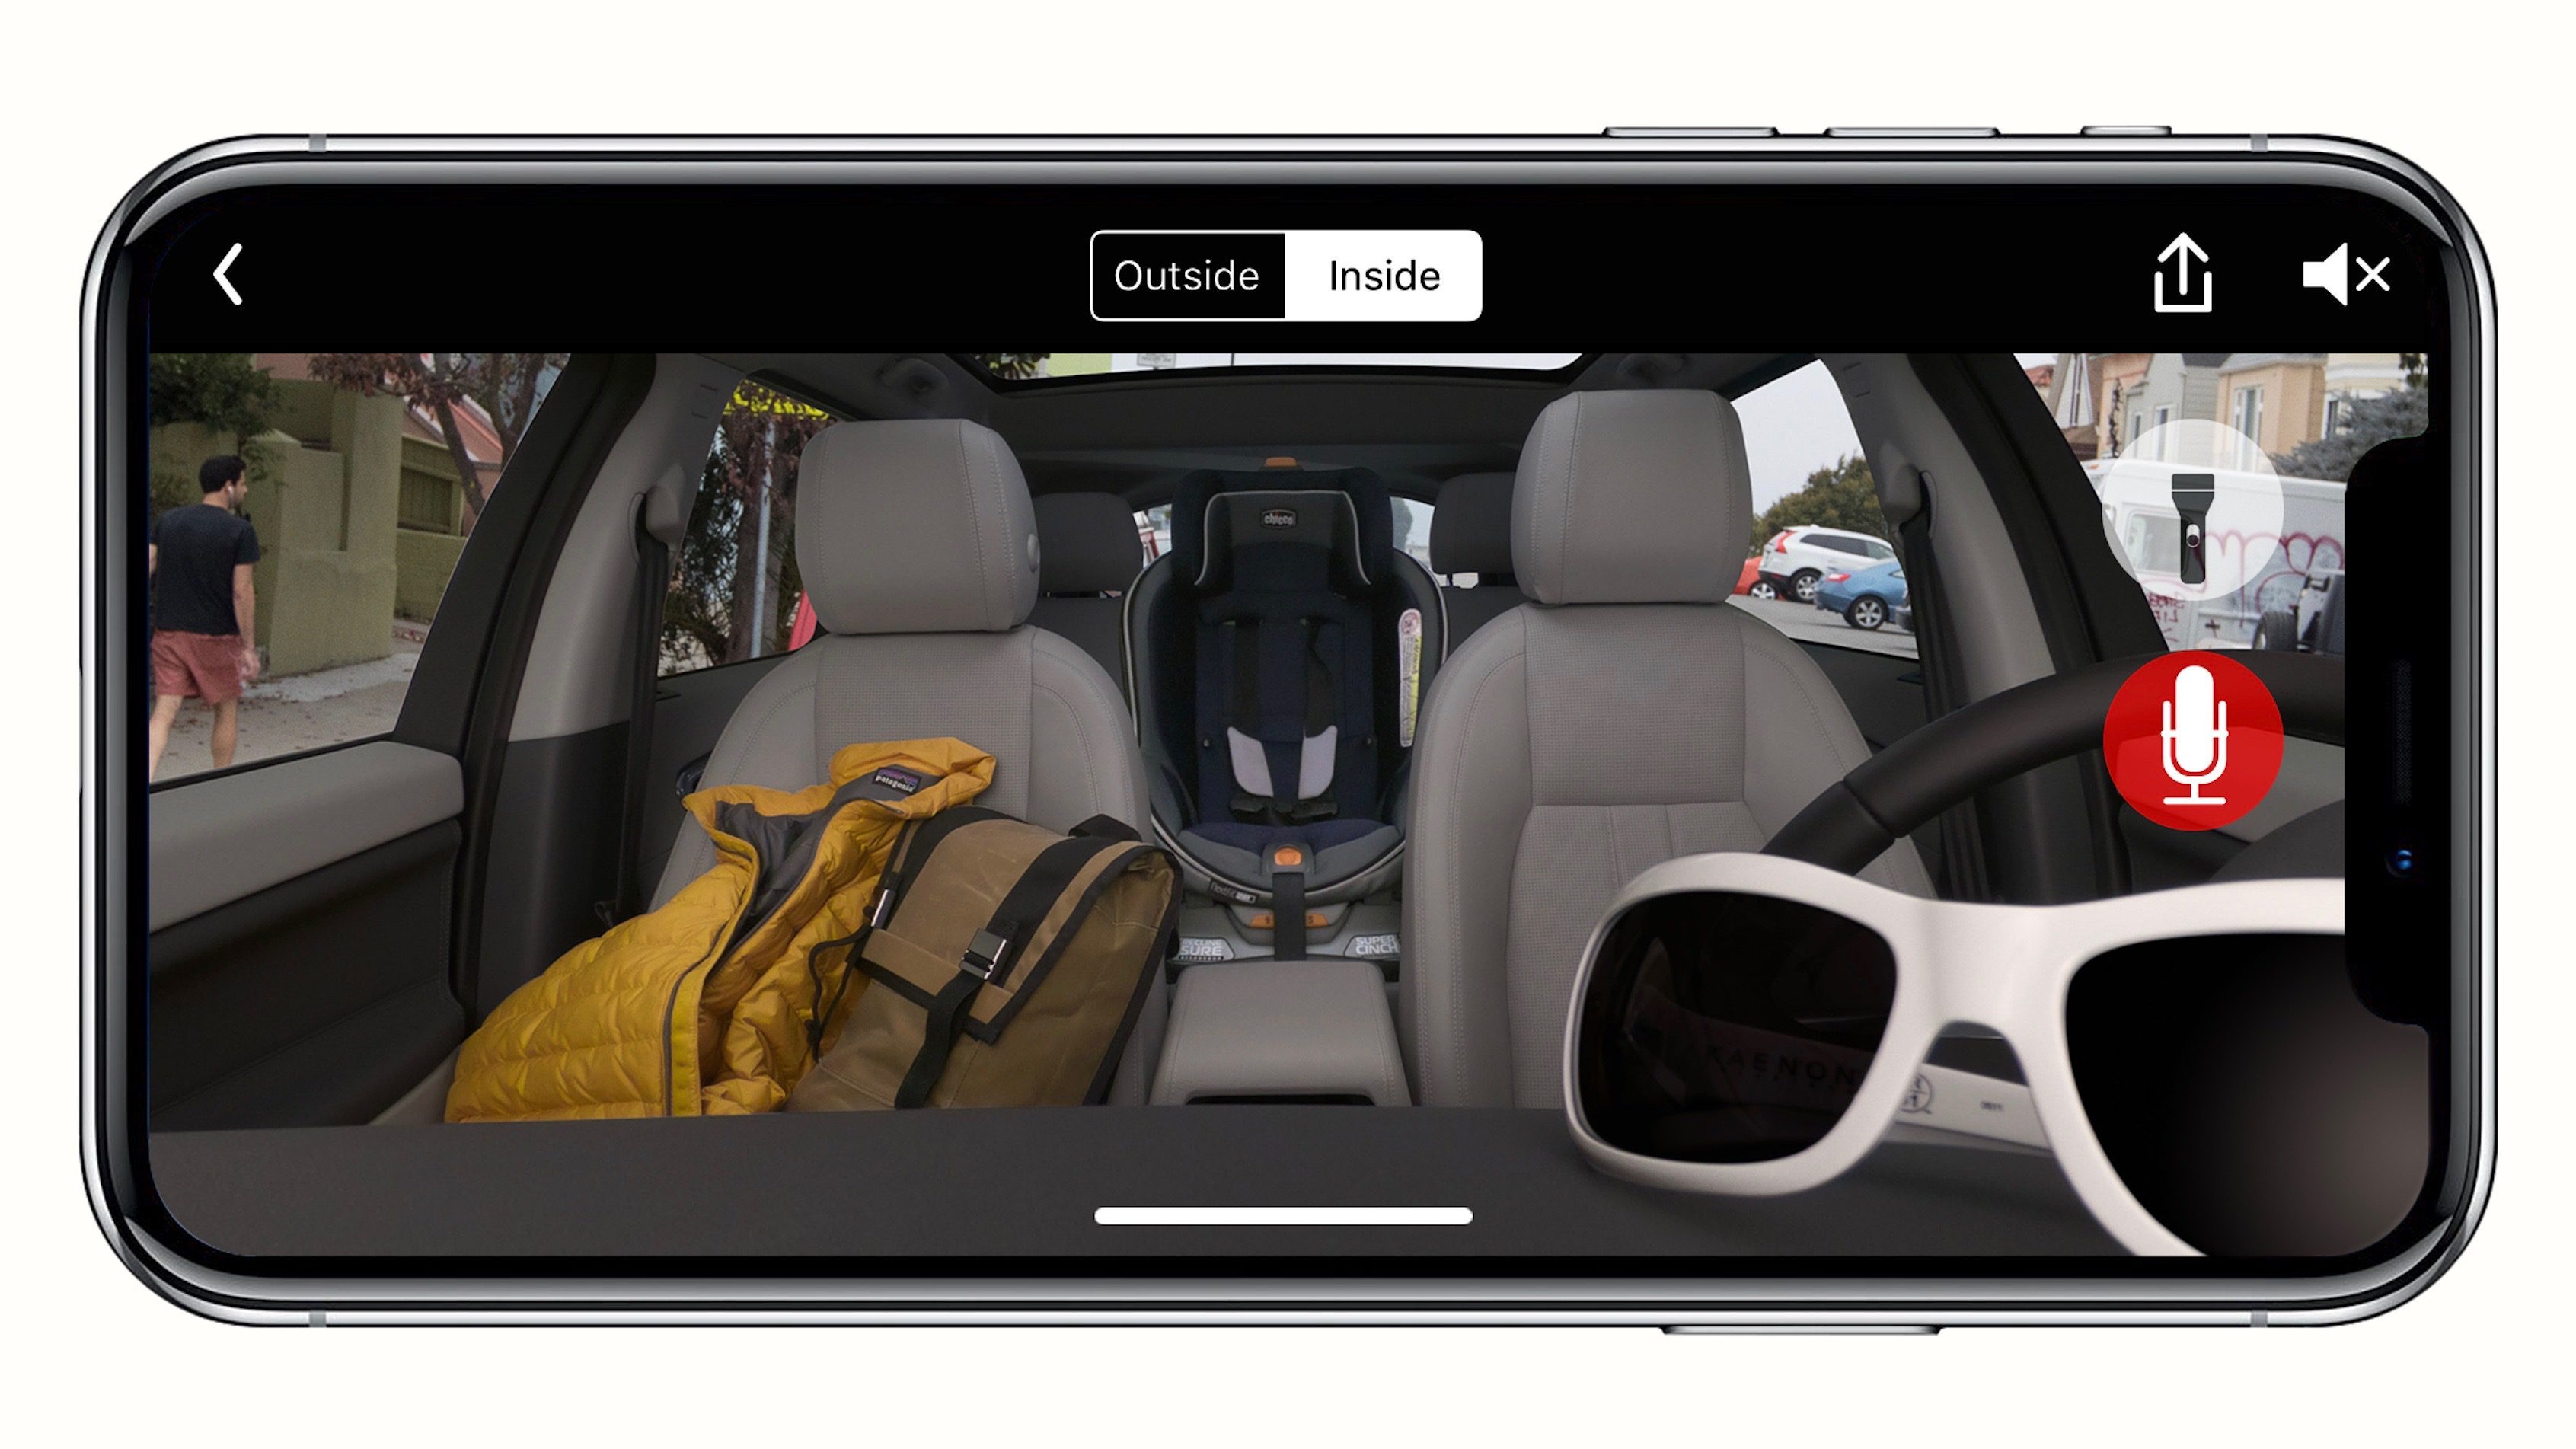 Security Cameras For Cars: Ex-iPod Director Launches LTE-connected Owl Security